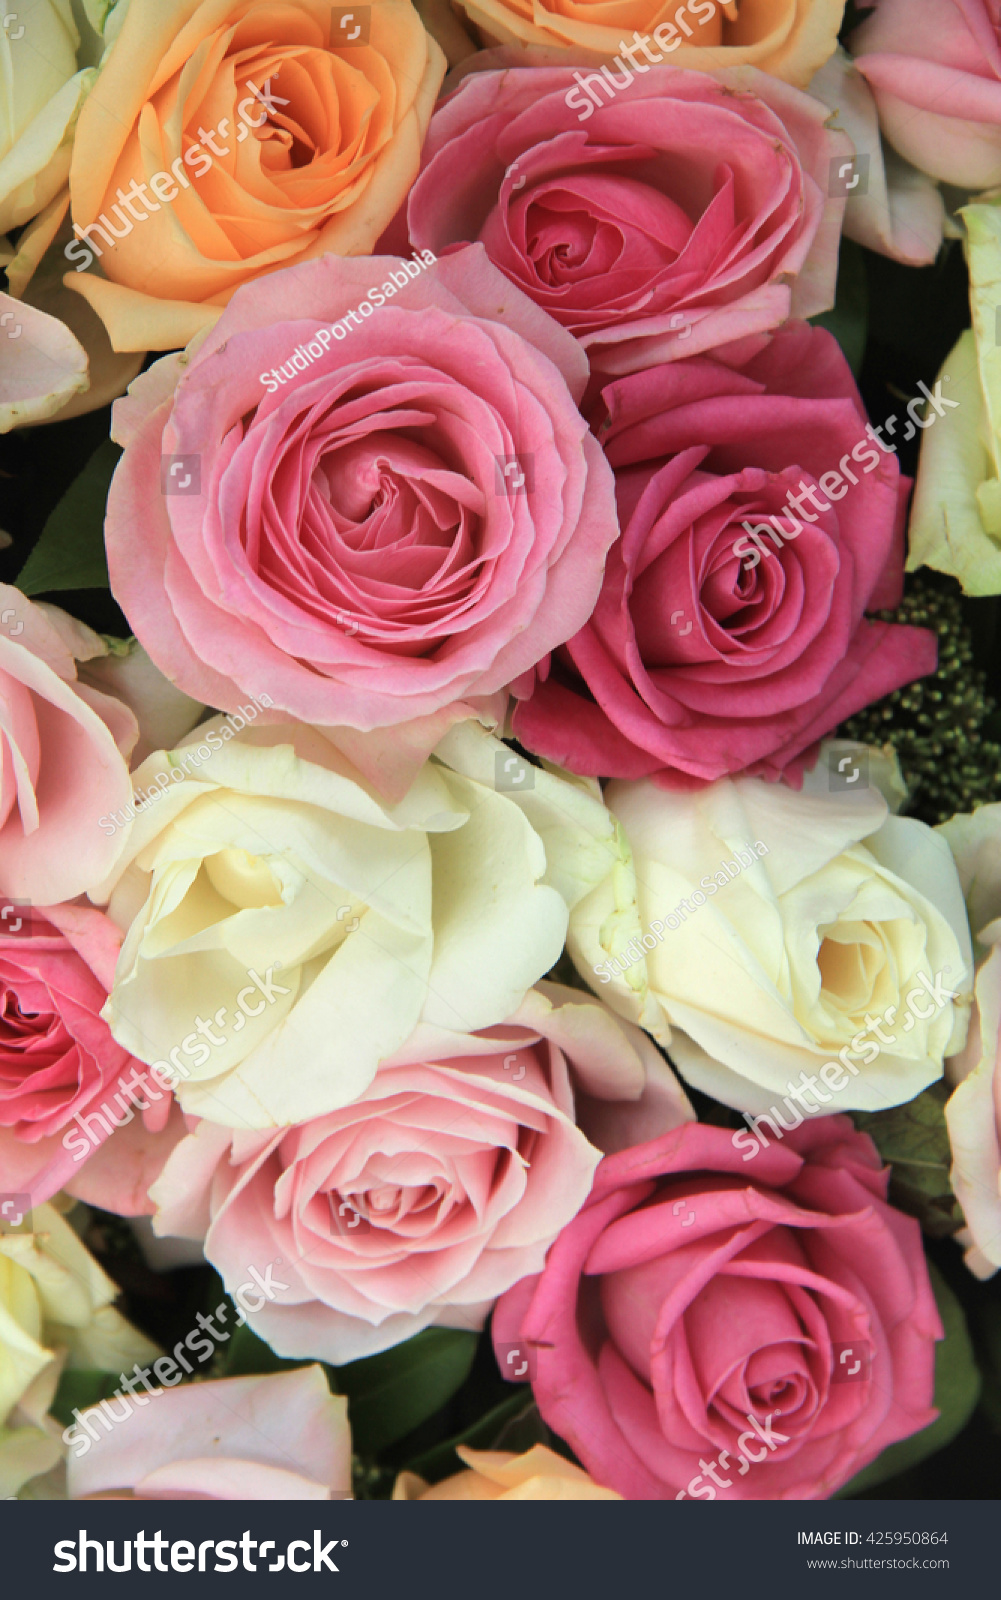 Wedding Flowers In Different Shades Of Pink And Red Roses Ez Canvas